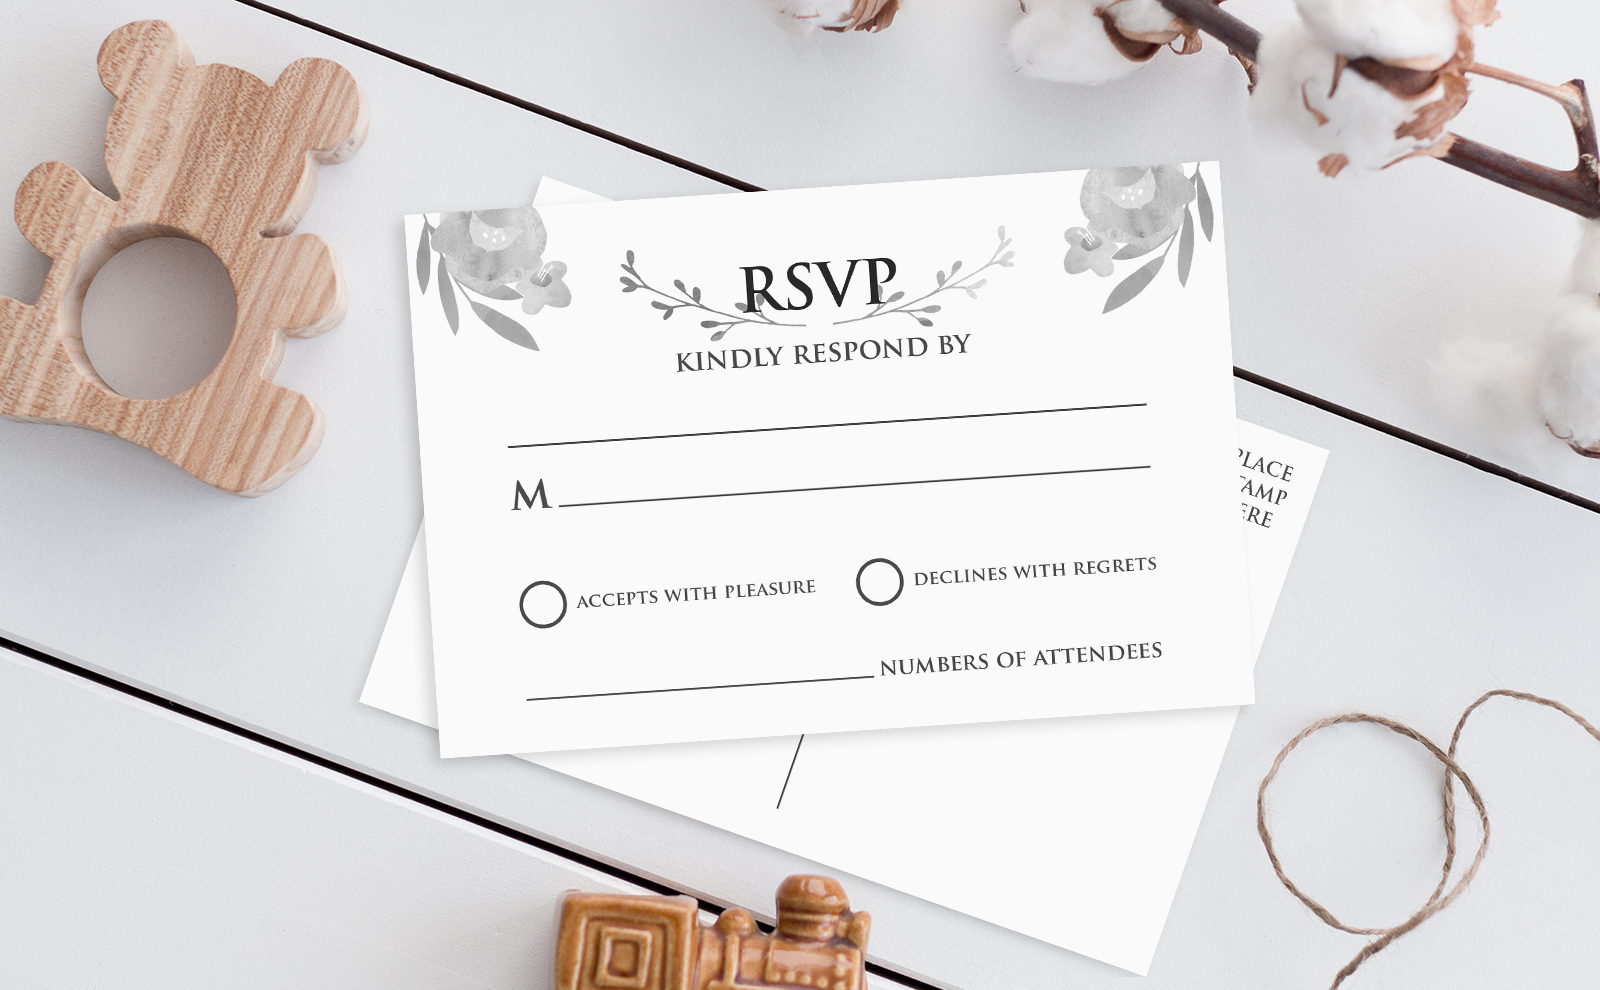 HOW TO WRITE A WEDDING RSVP CARD